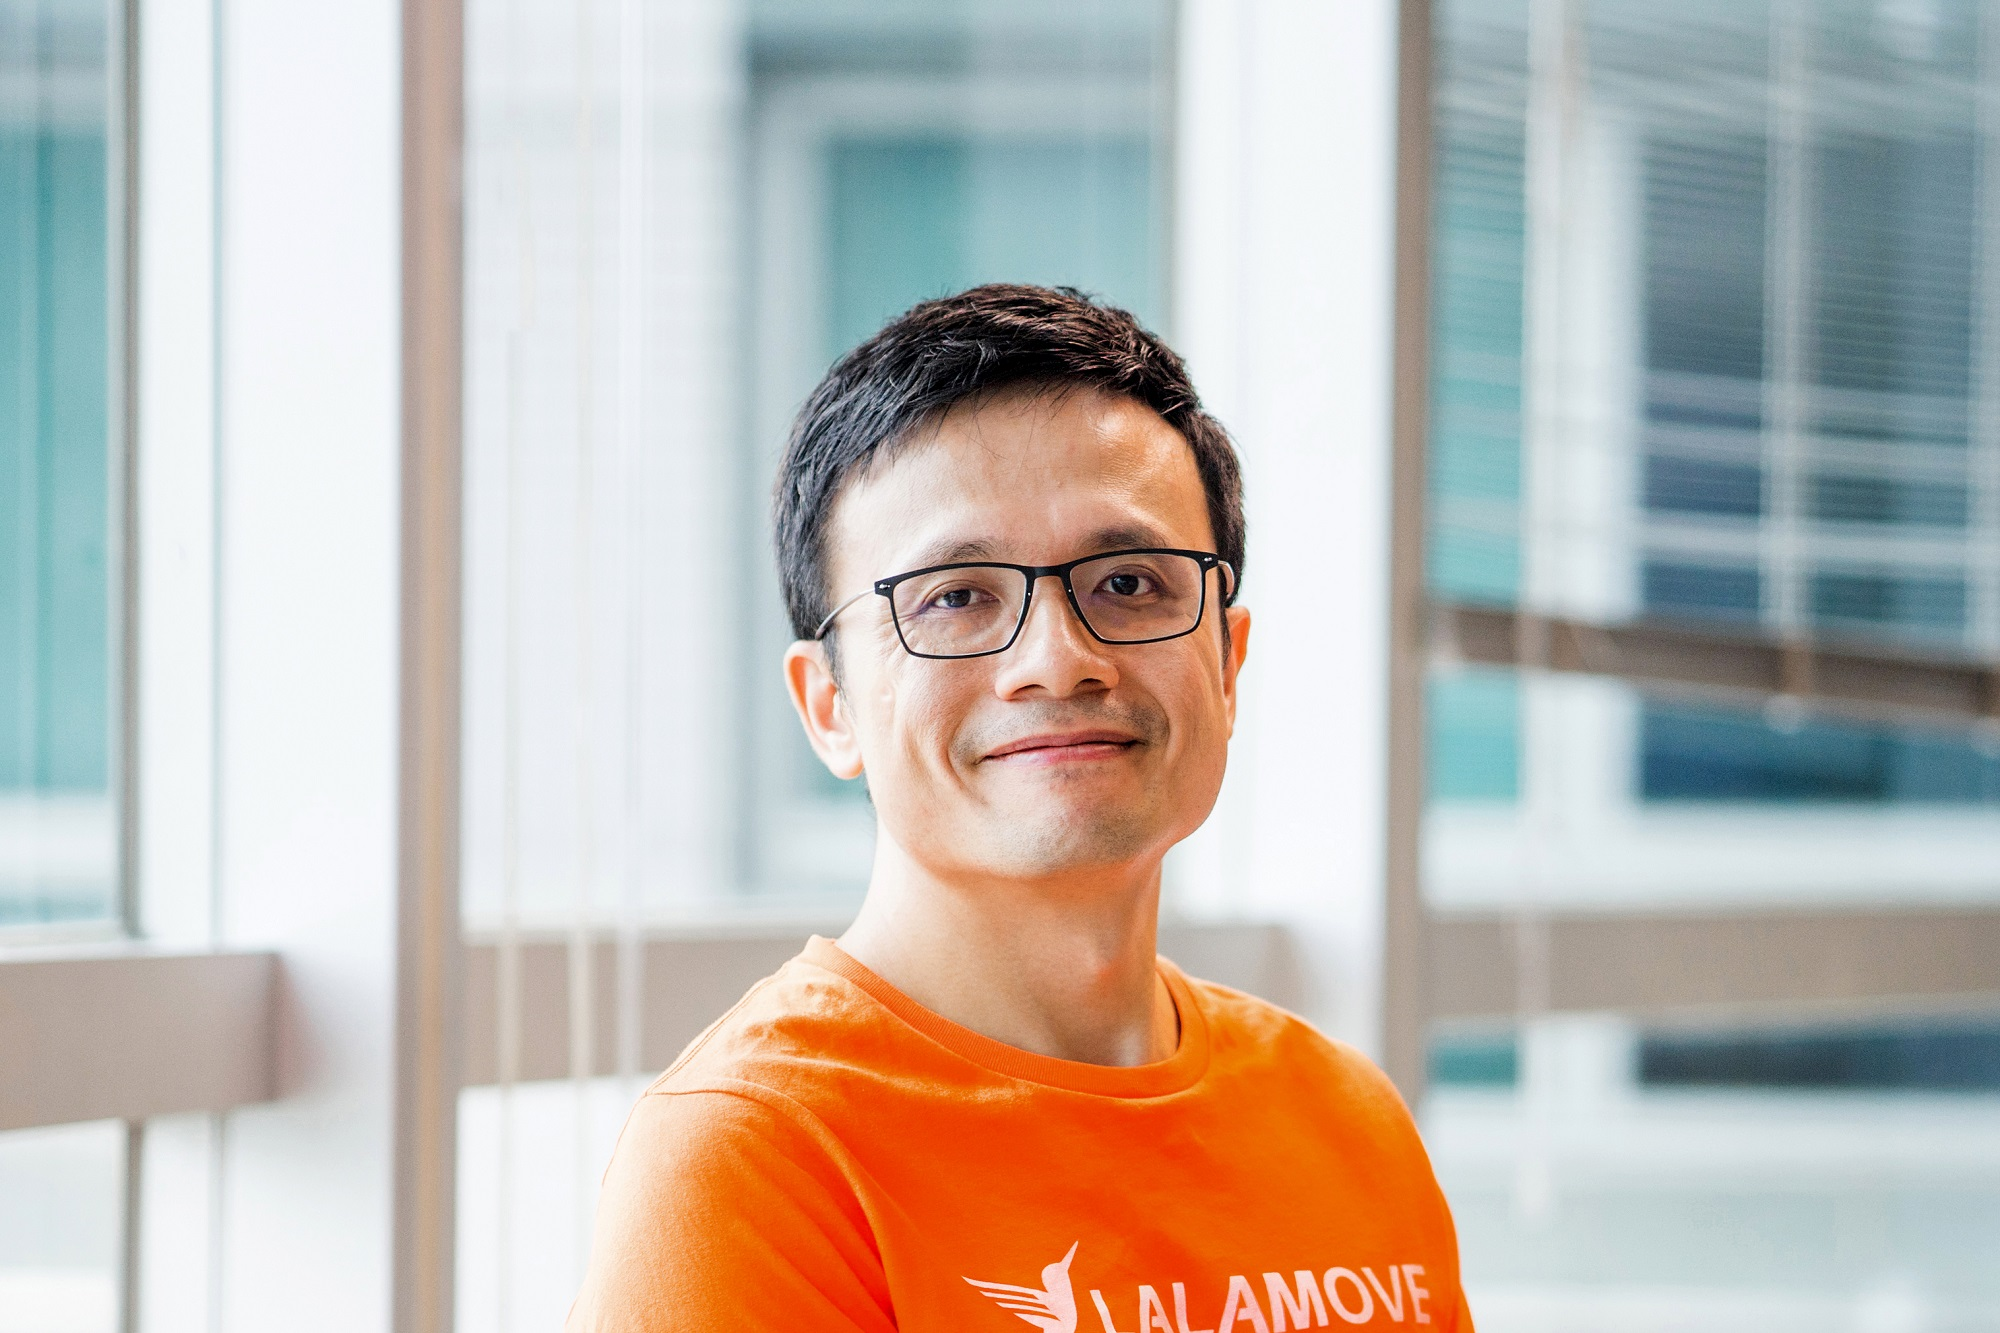 Shing Chow Founder and CEO of Lalamove - Lalamove Raises Series C to Expand Delivery Coverage in Asia